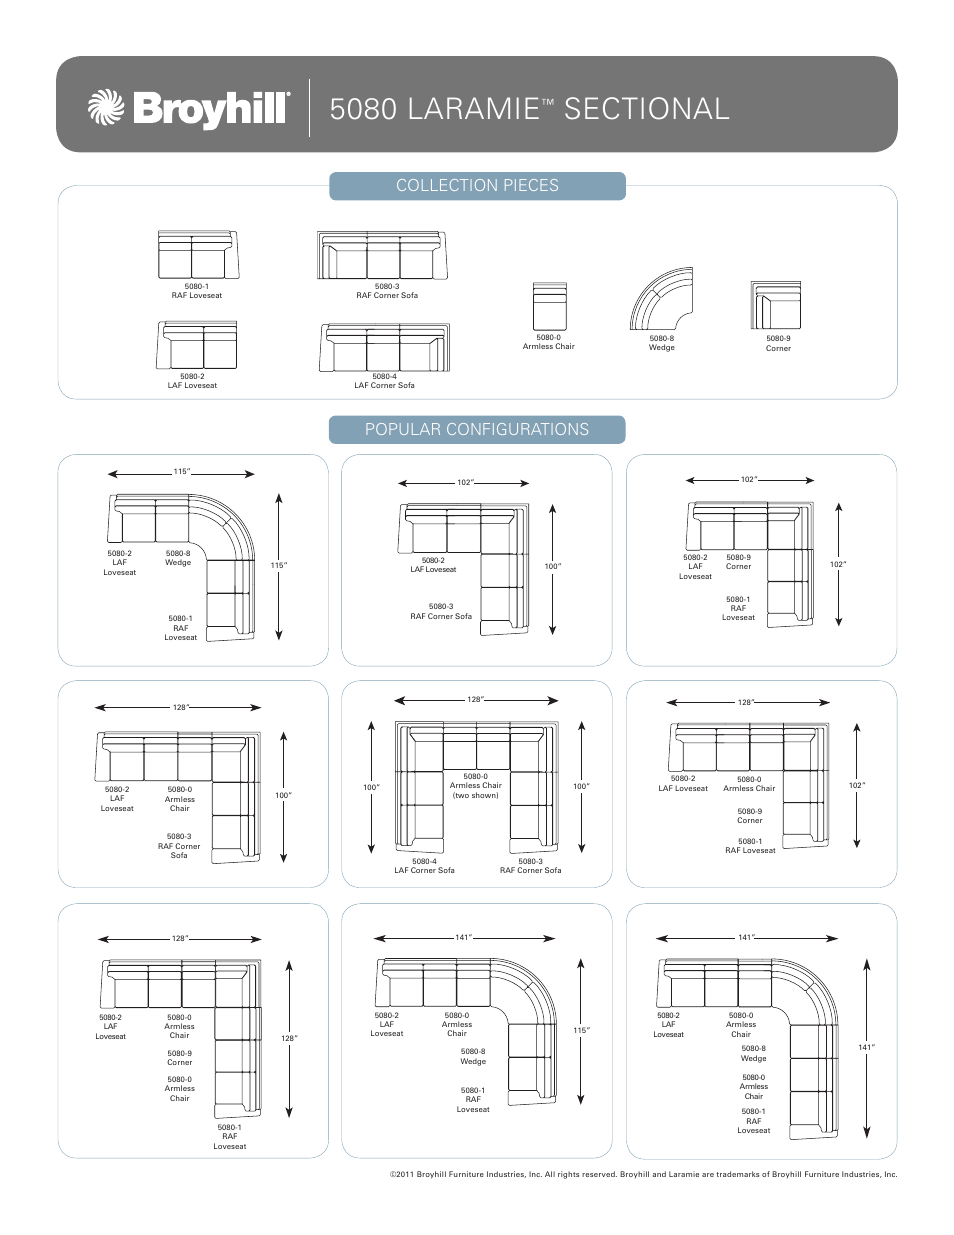 Broyhill LARAMIE SECTIONAL Configurations User Manual | 1 page